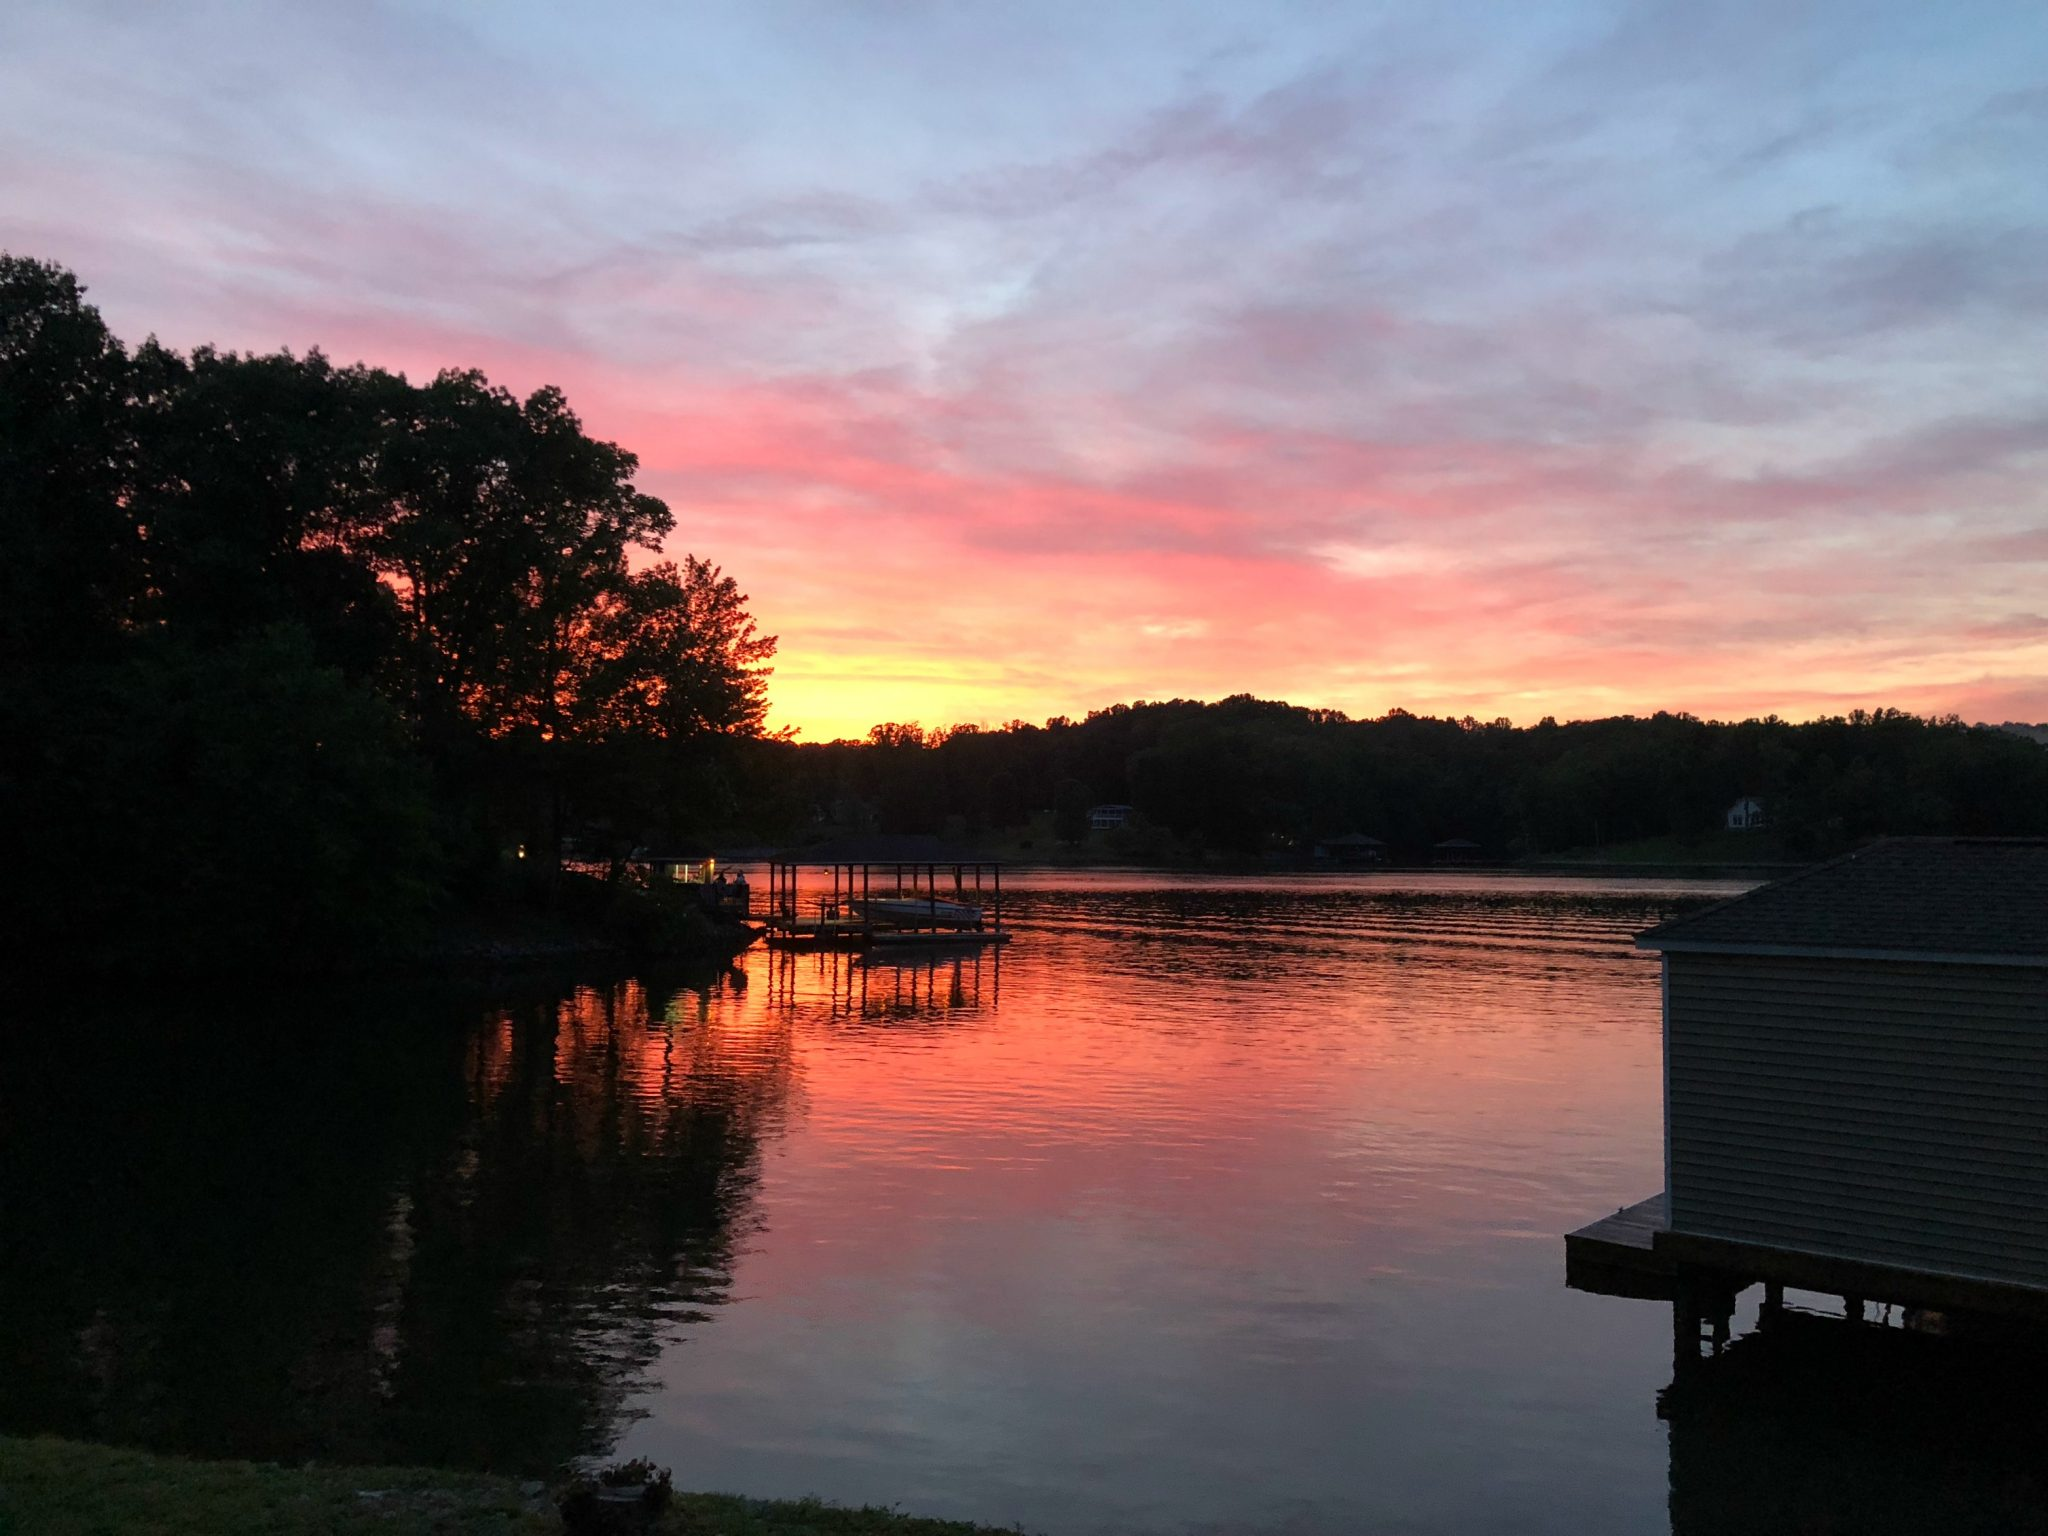 Smith Mountain Lake, VA at sunset